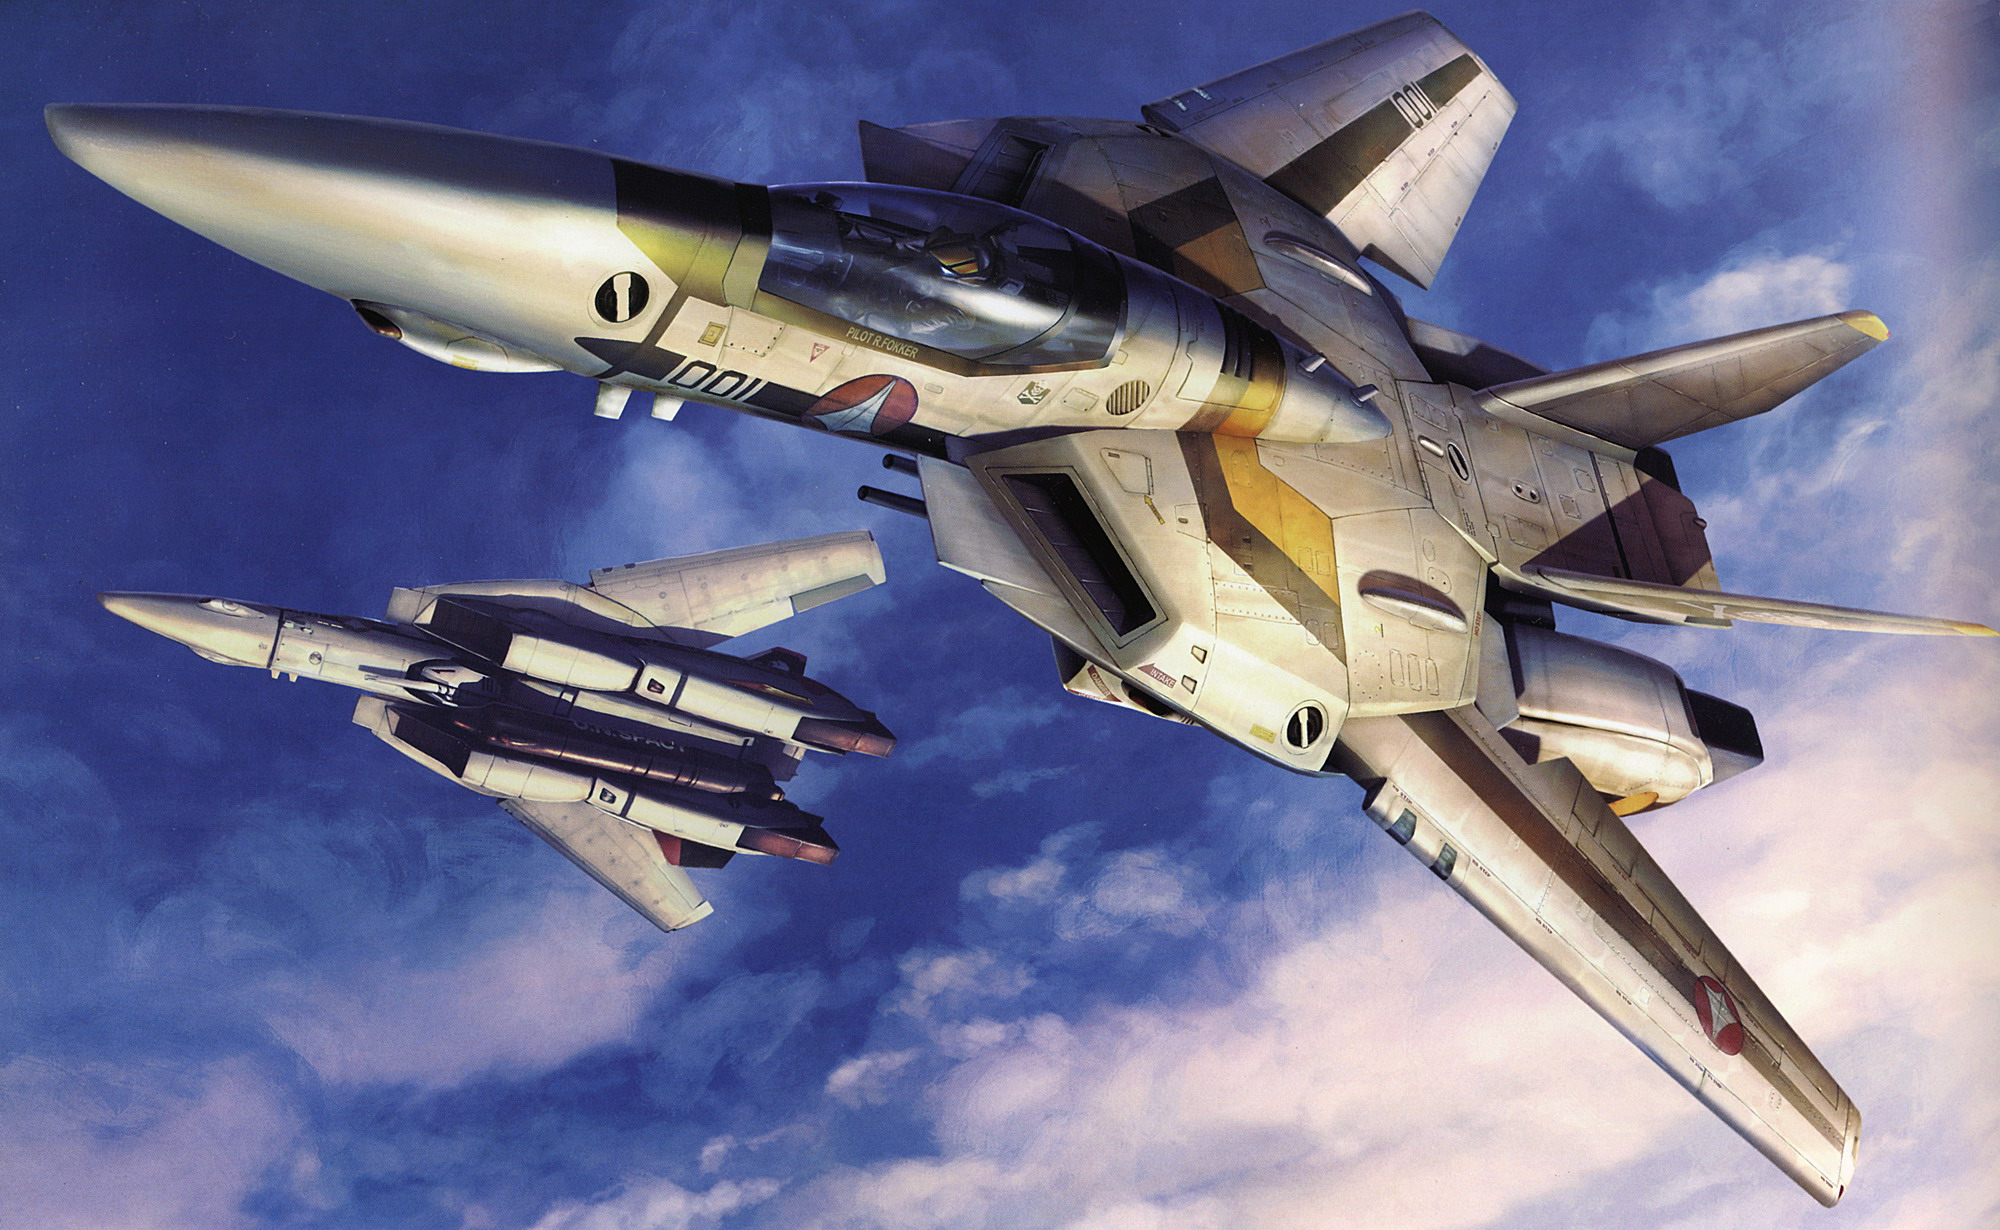 space fighter jets - HD1920×1200